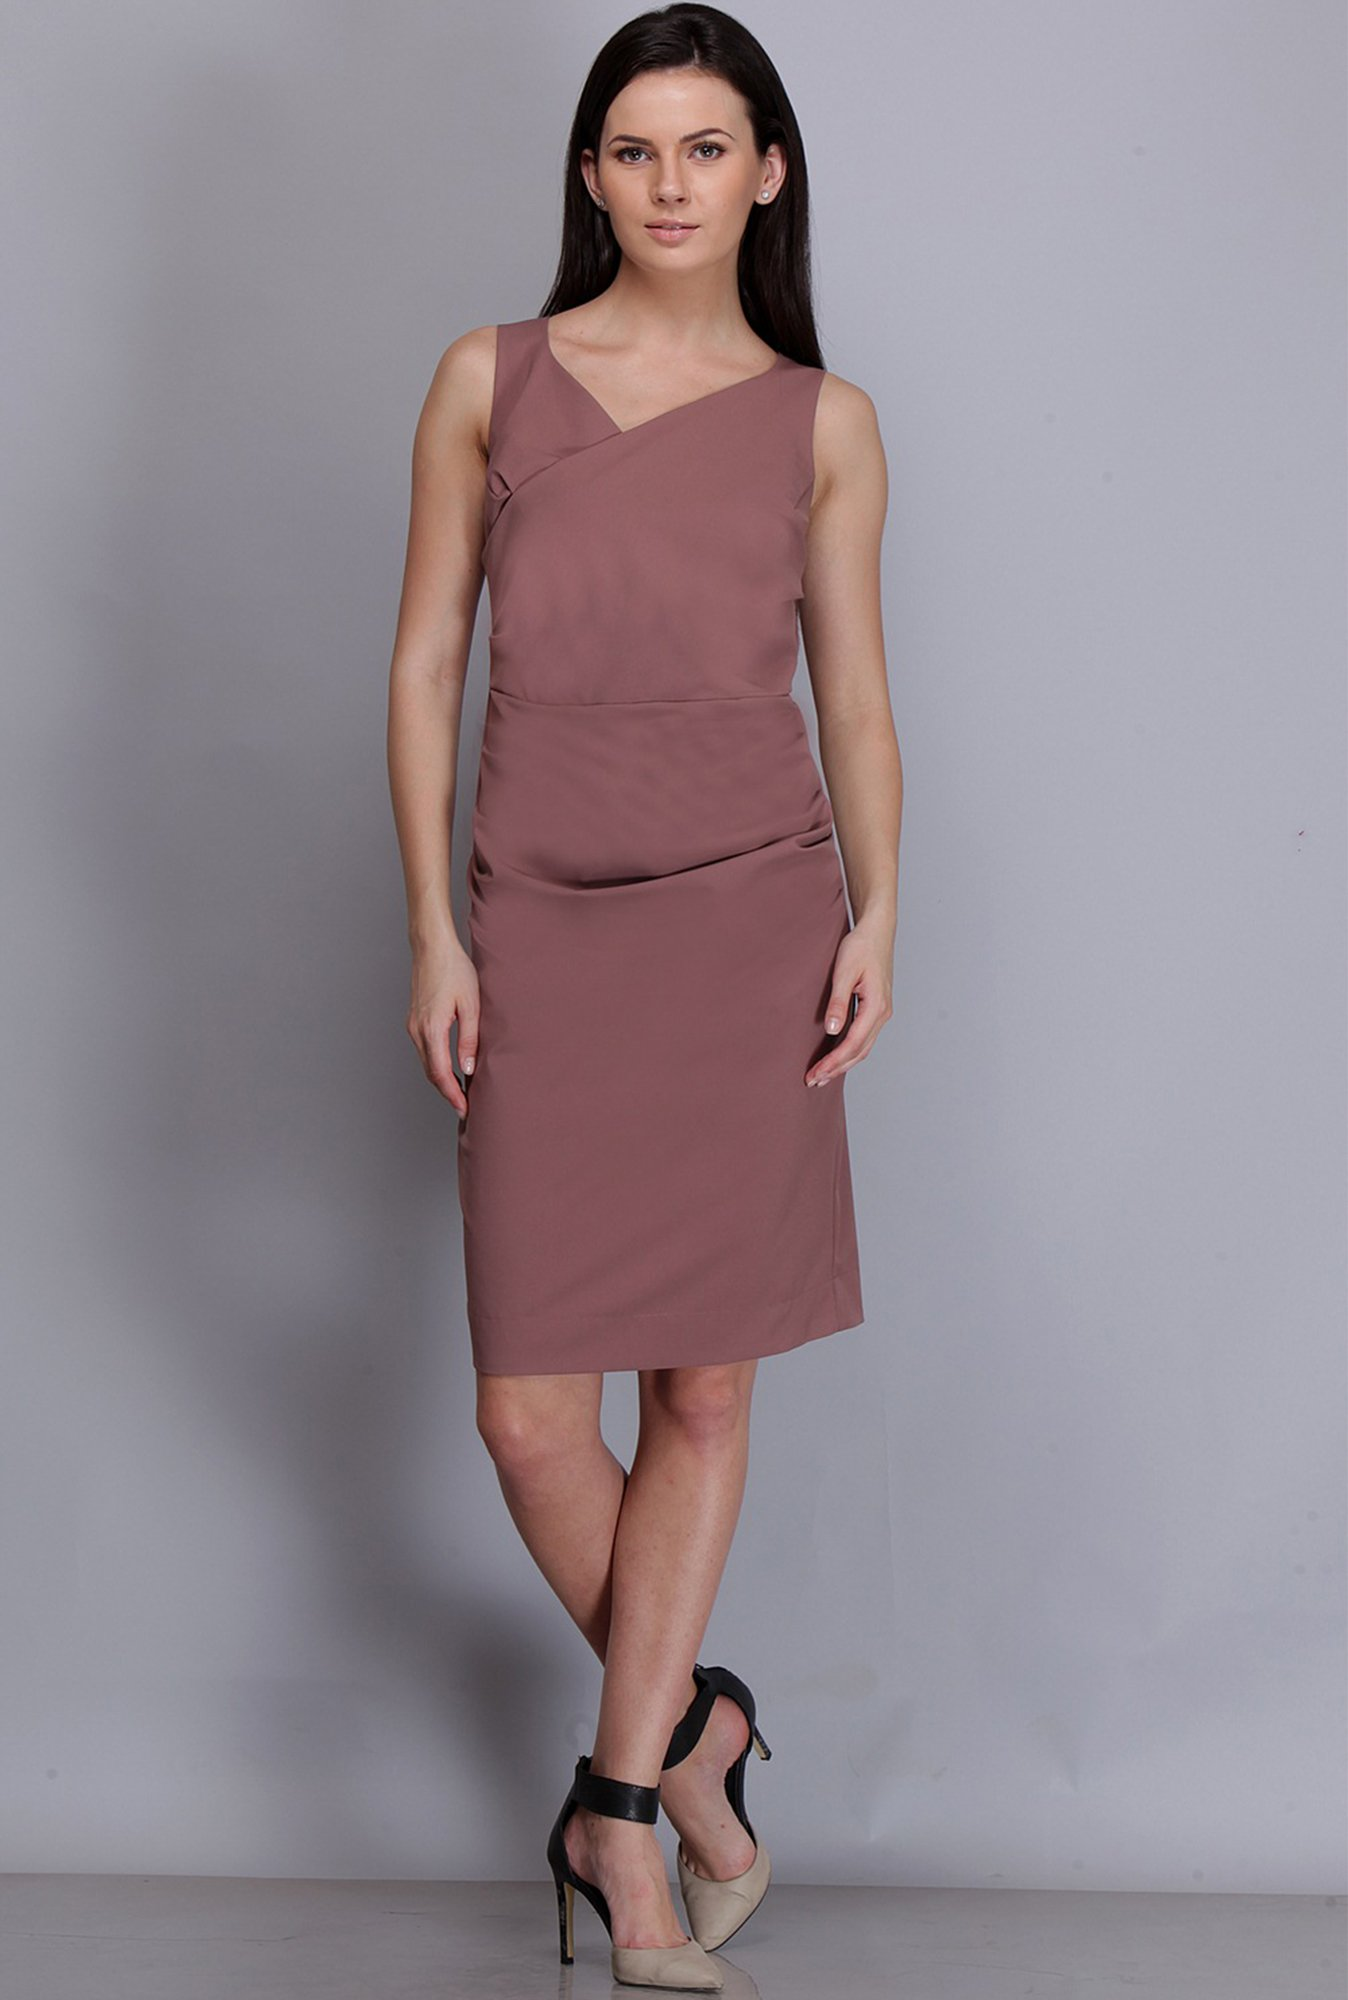 Kaaryah Pink Solid Dress